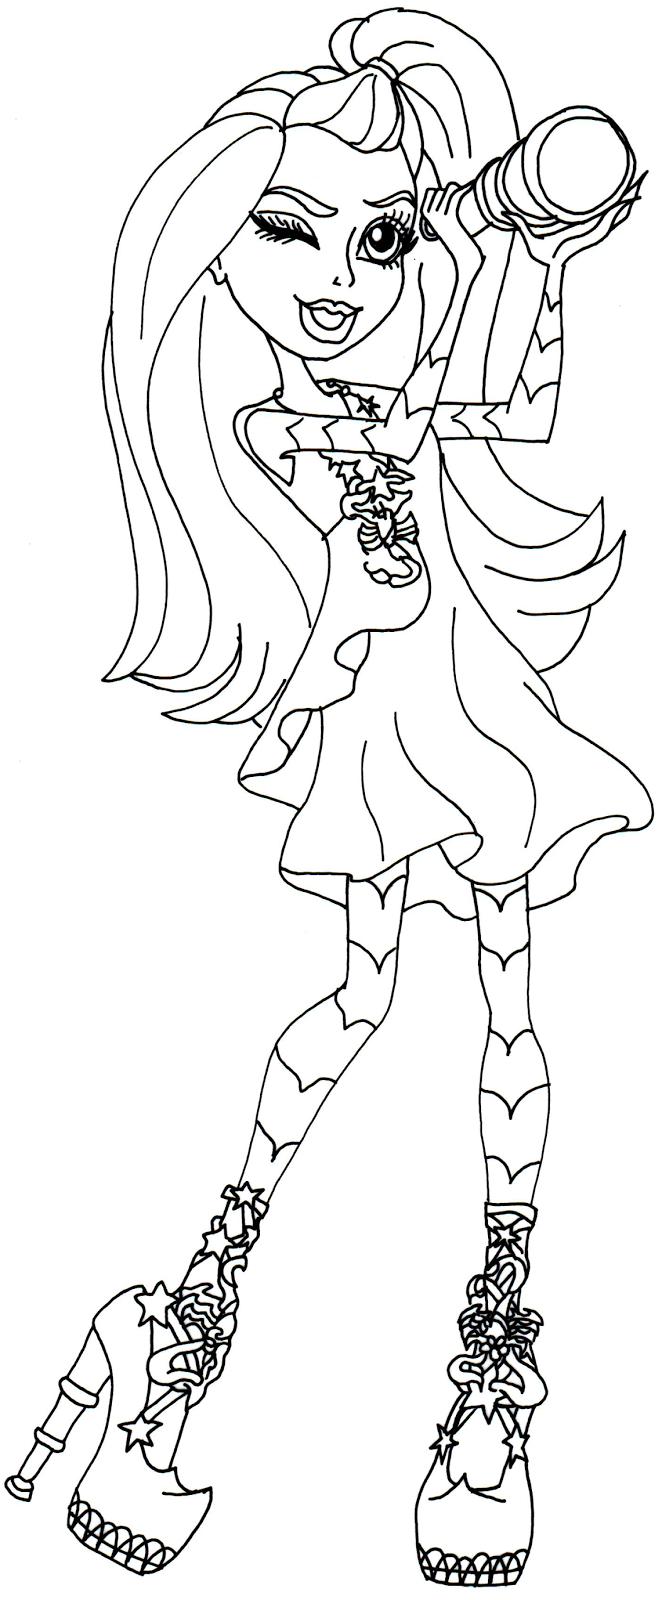 gigi grant freaky field trip monster on monster high coloring pages ...